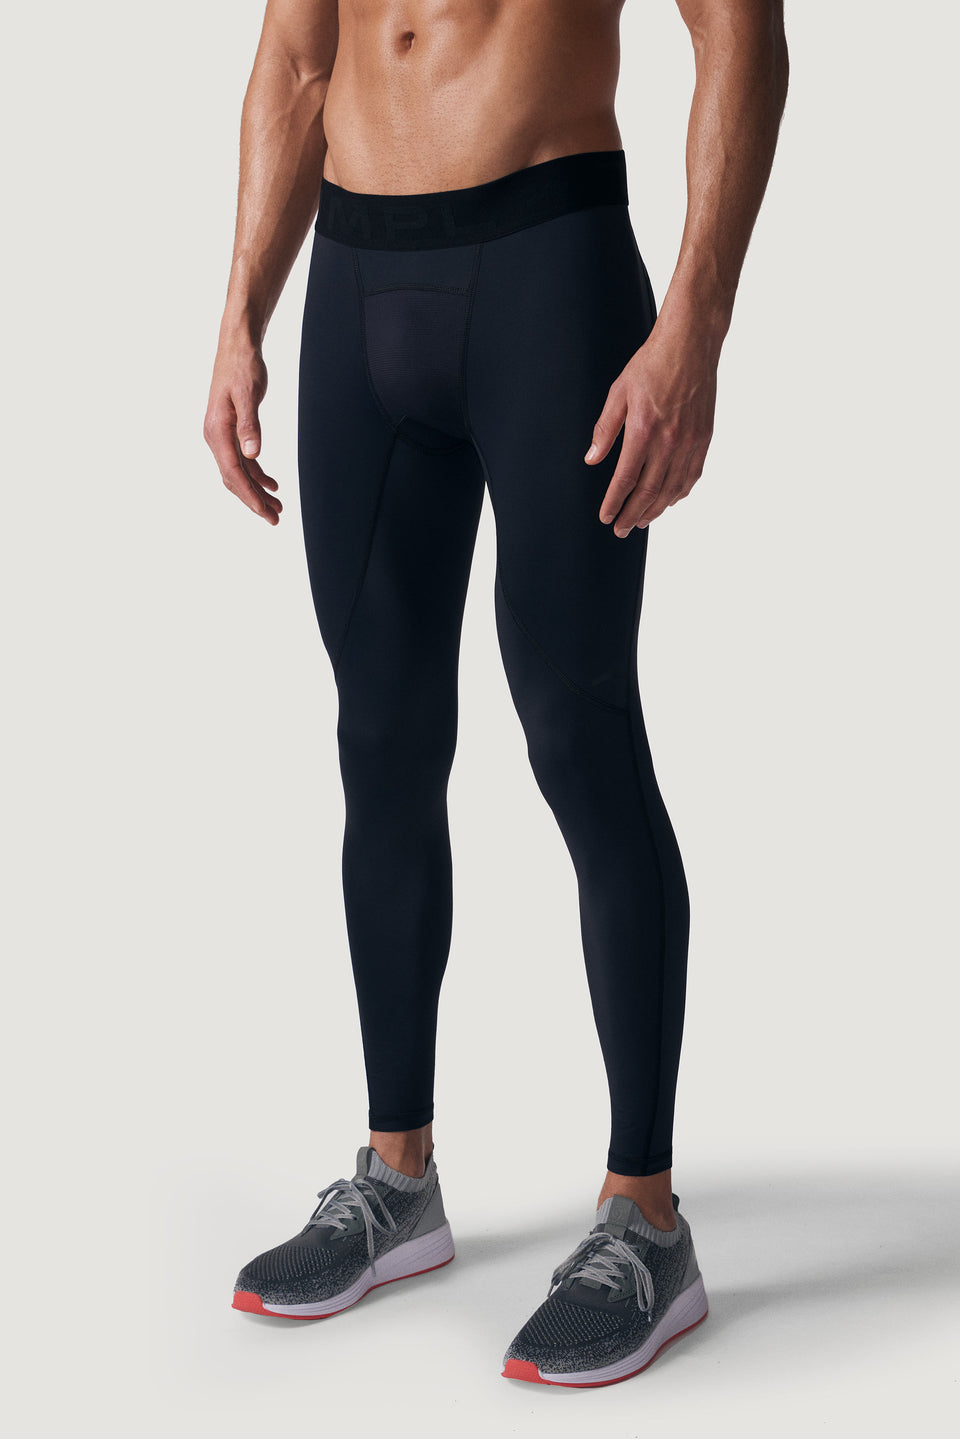 TMPL Sportswear Men's Alpha DRIVE Full Compression Pant